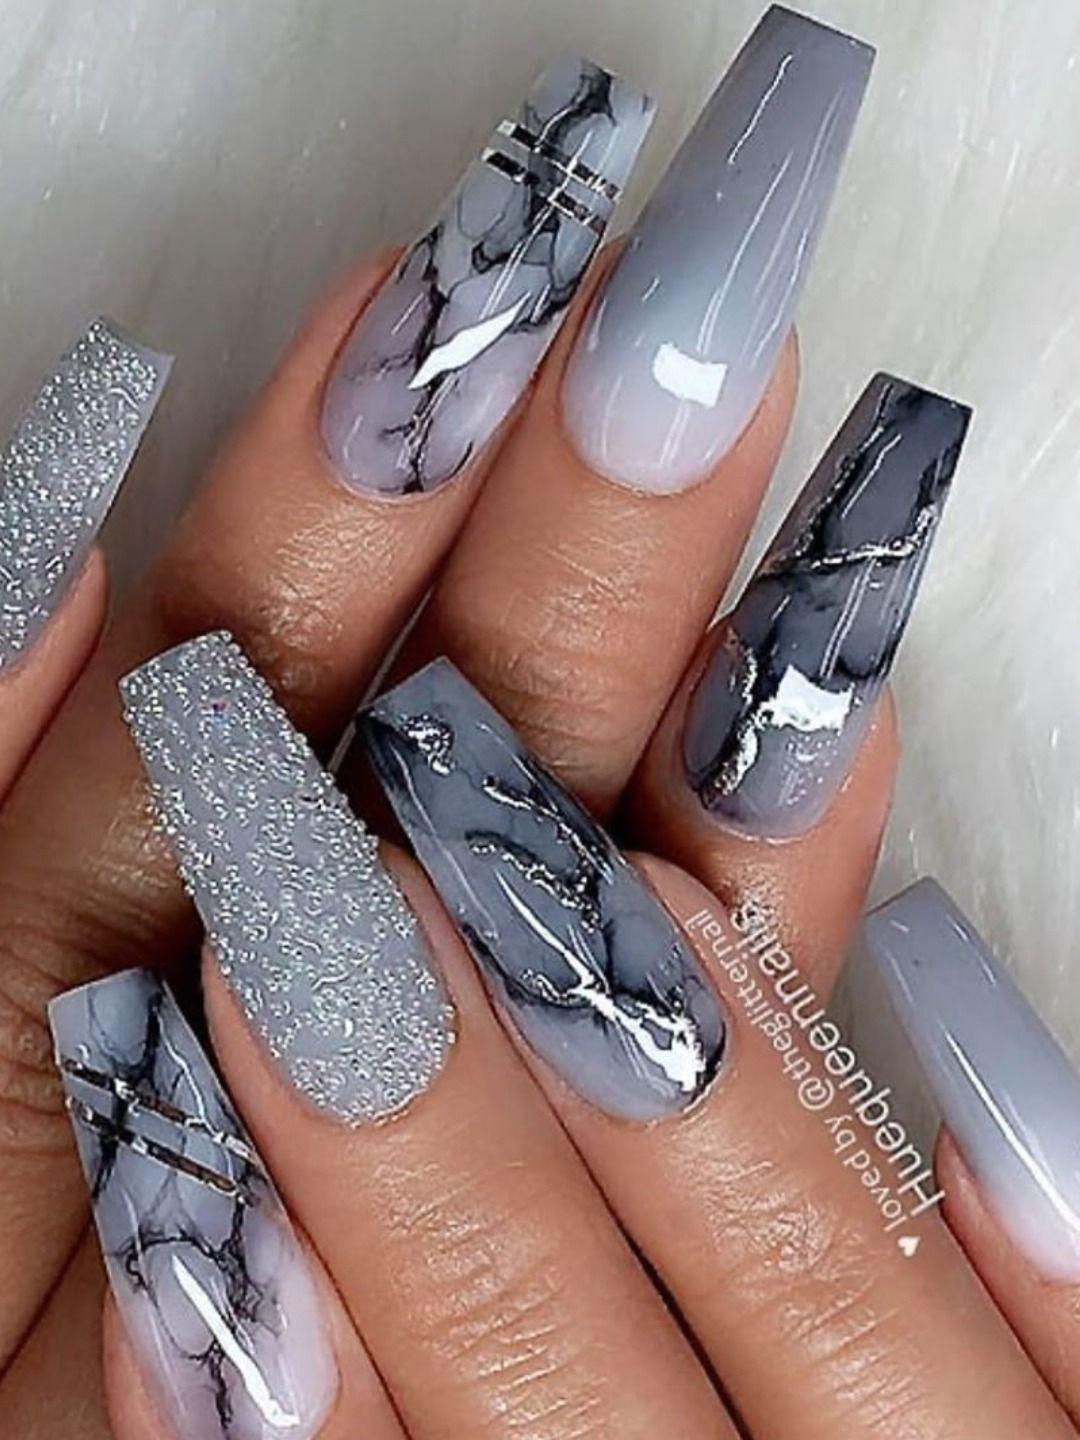 The Best Gray Nail Art Design Ideas In 2020 With Images Dlugie